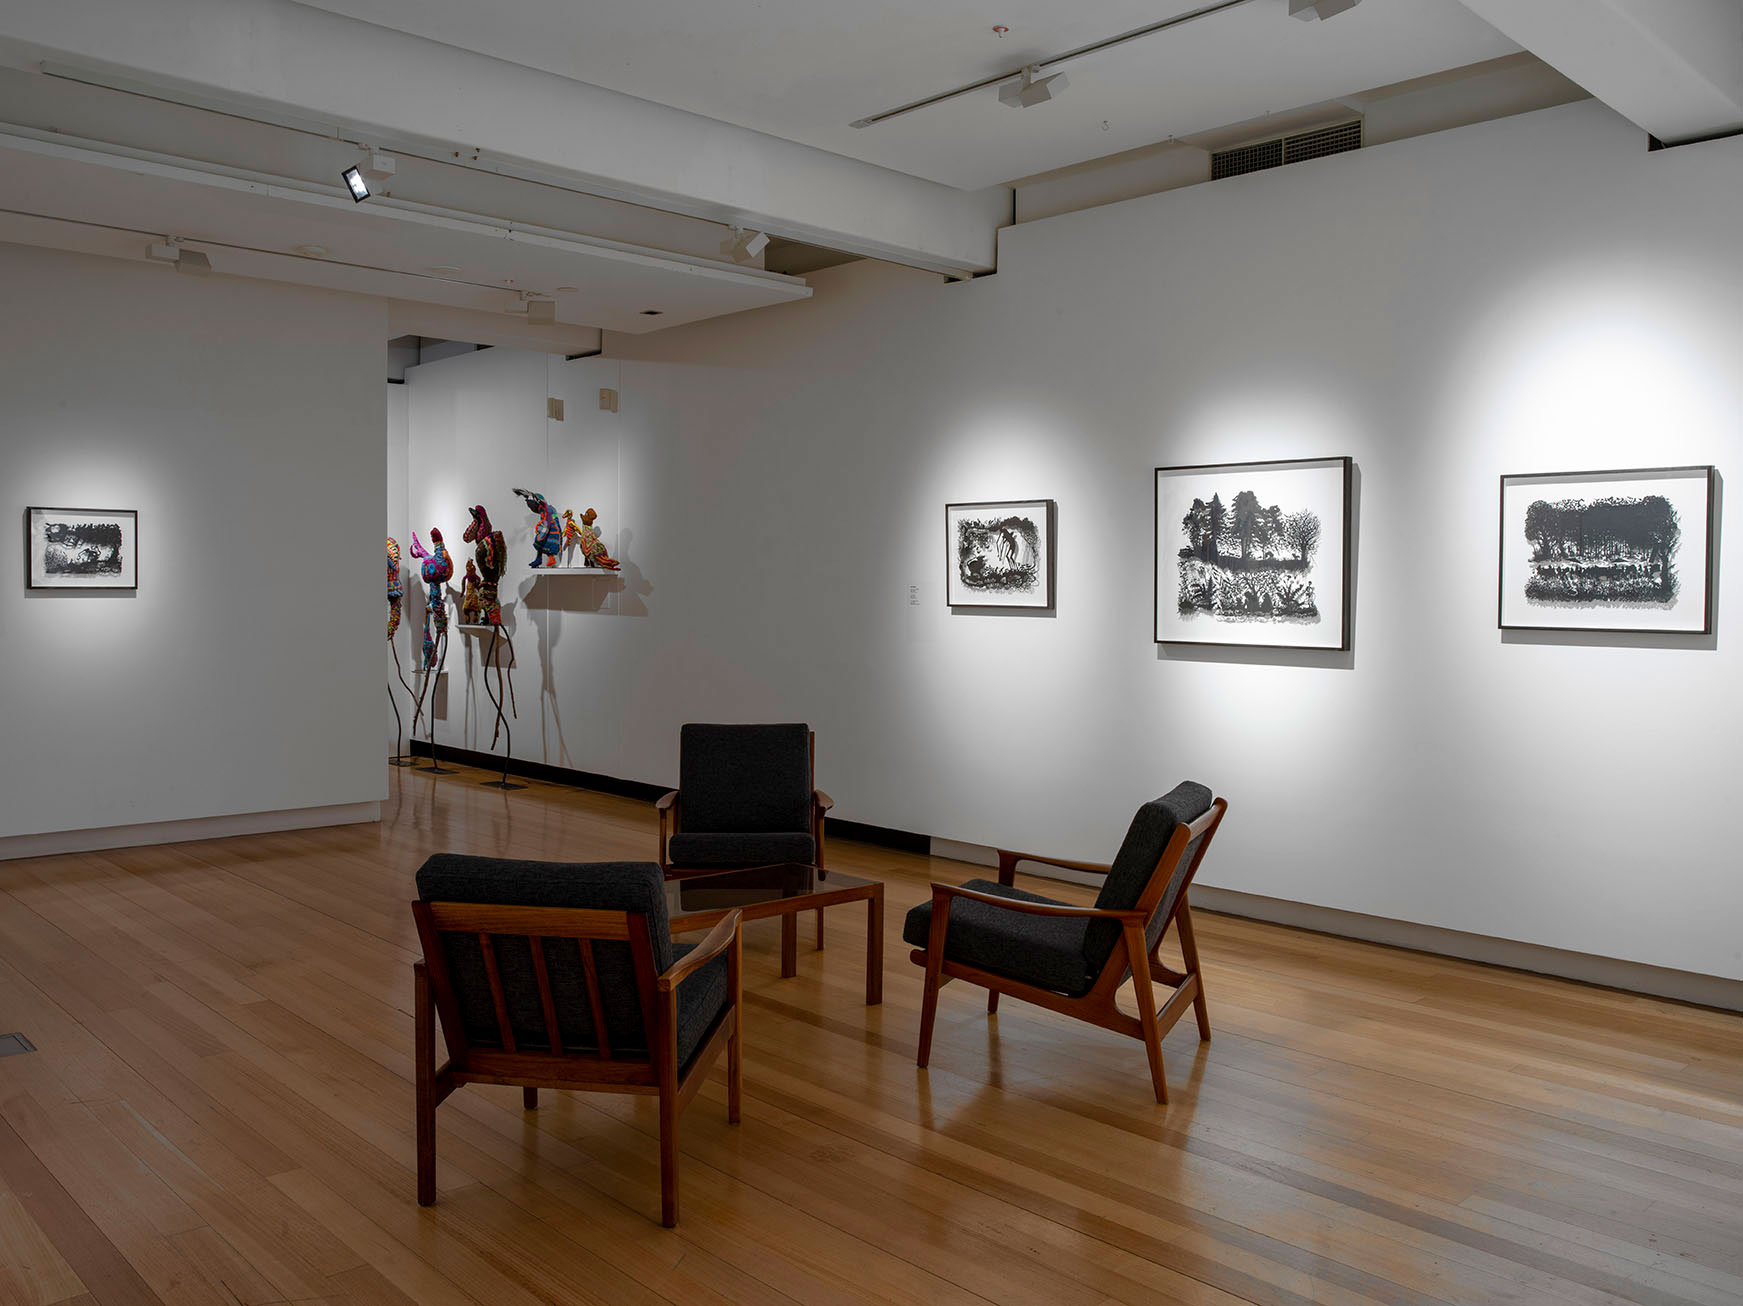 Installation view of 'Beyond reason' Photo: Carl Werner